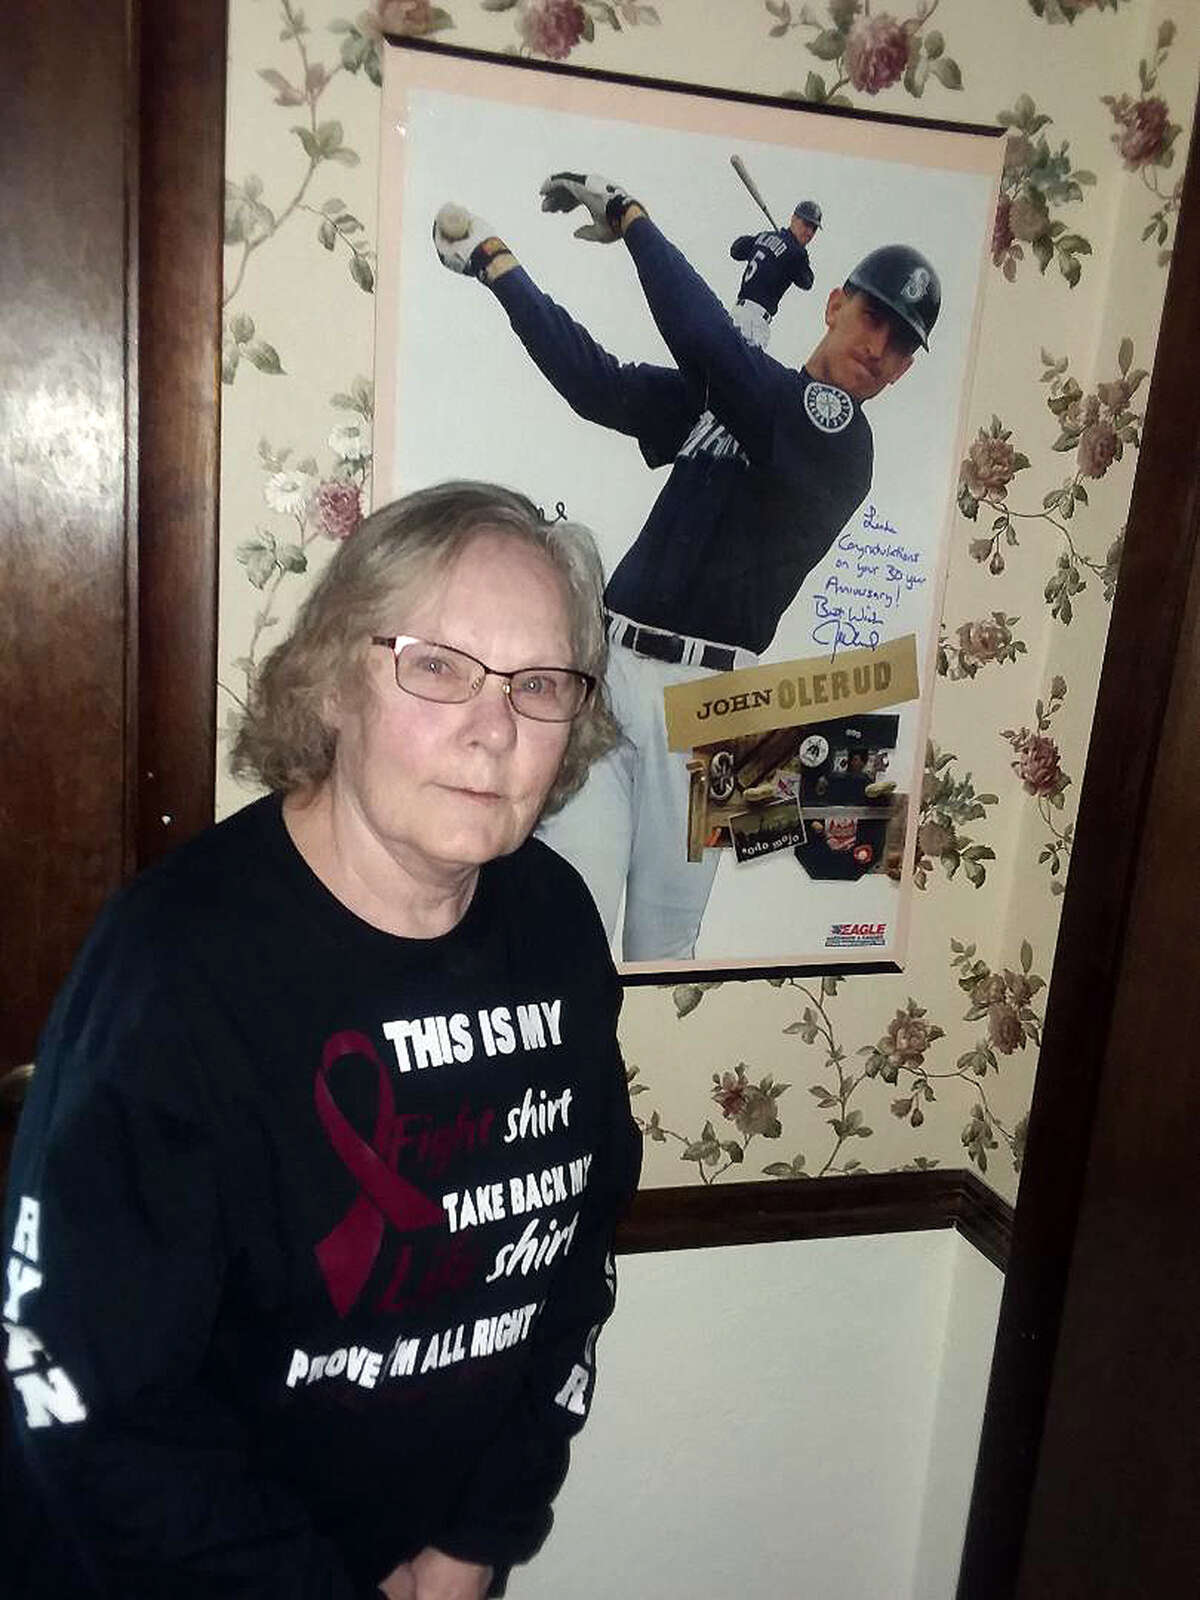 Linda Kovarik poses with her autographed poster of former Seattle Mariner John Olerud, who had an aneurysm within 30 days of Linda's in 1989. The Kovariks and Oleruds are part of a brain aneurysm support group on social media.